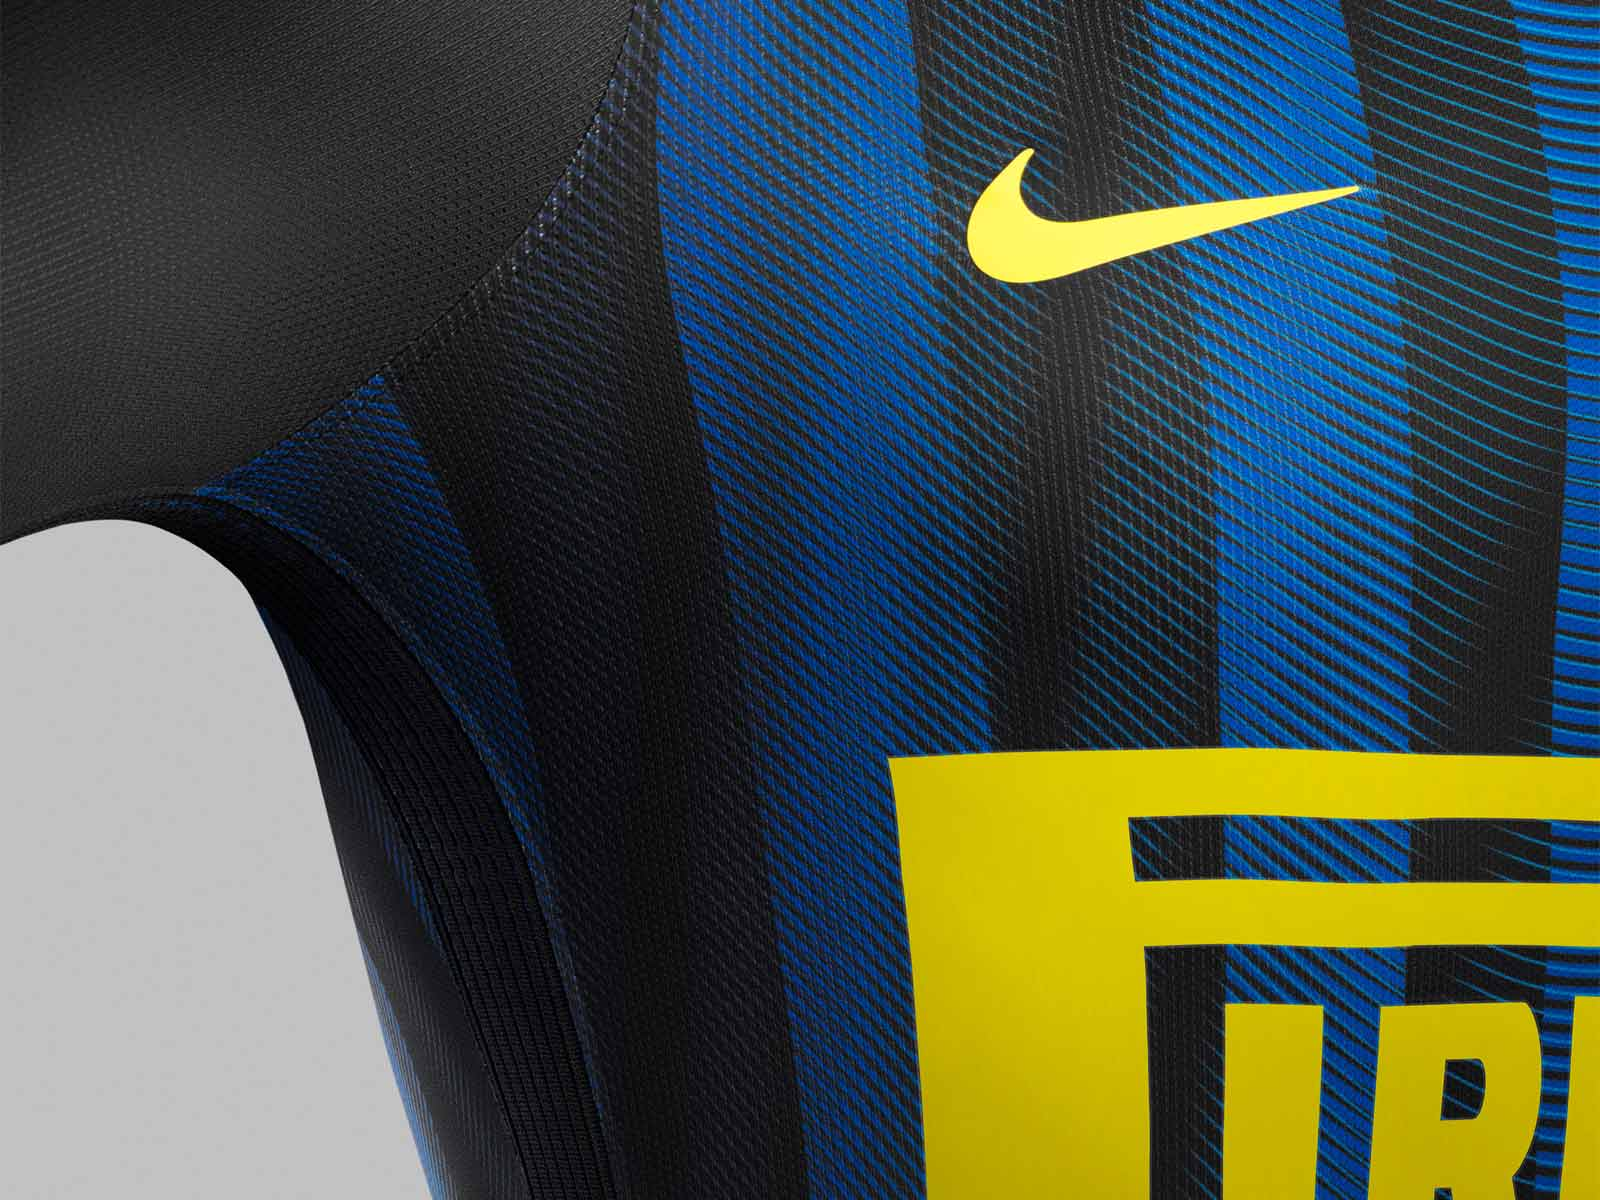 innovative design 0c7c7 52c2f Inter Milan 16-17 Home Kit Released - Footy Headlines